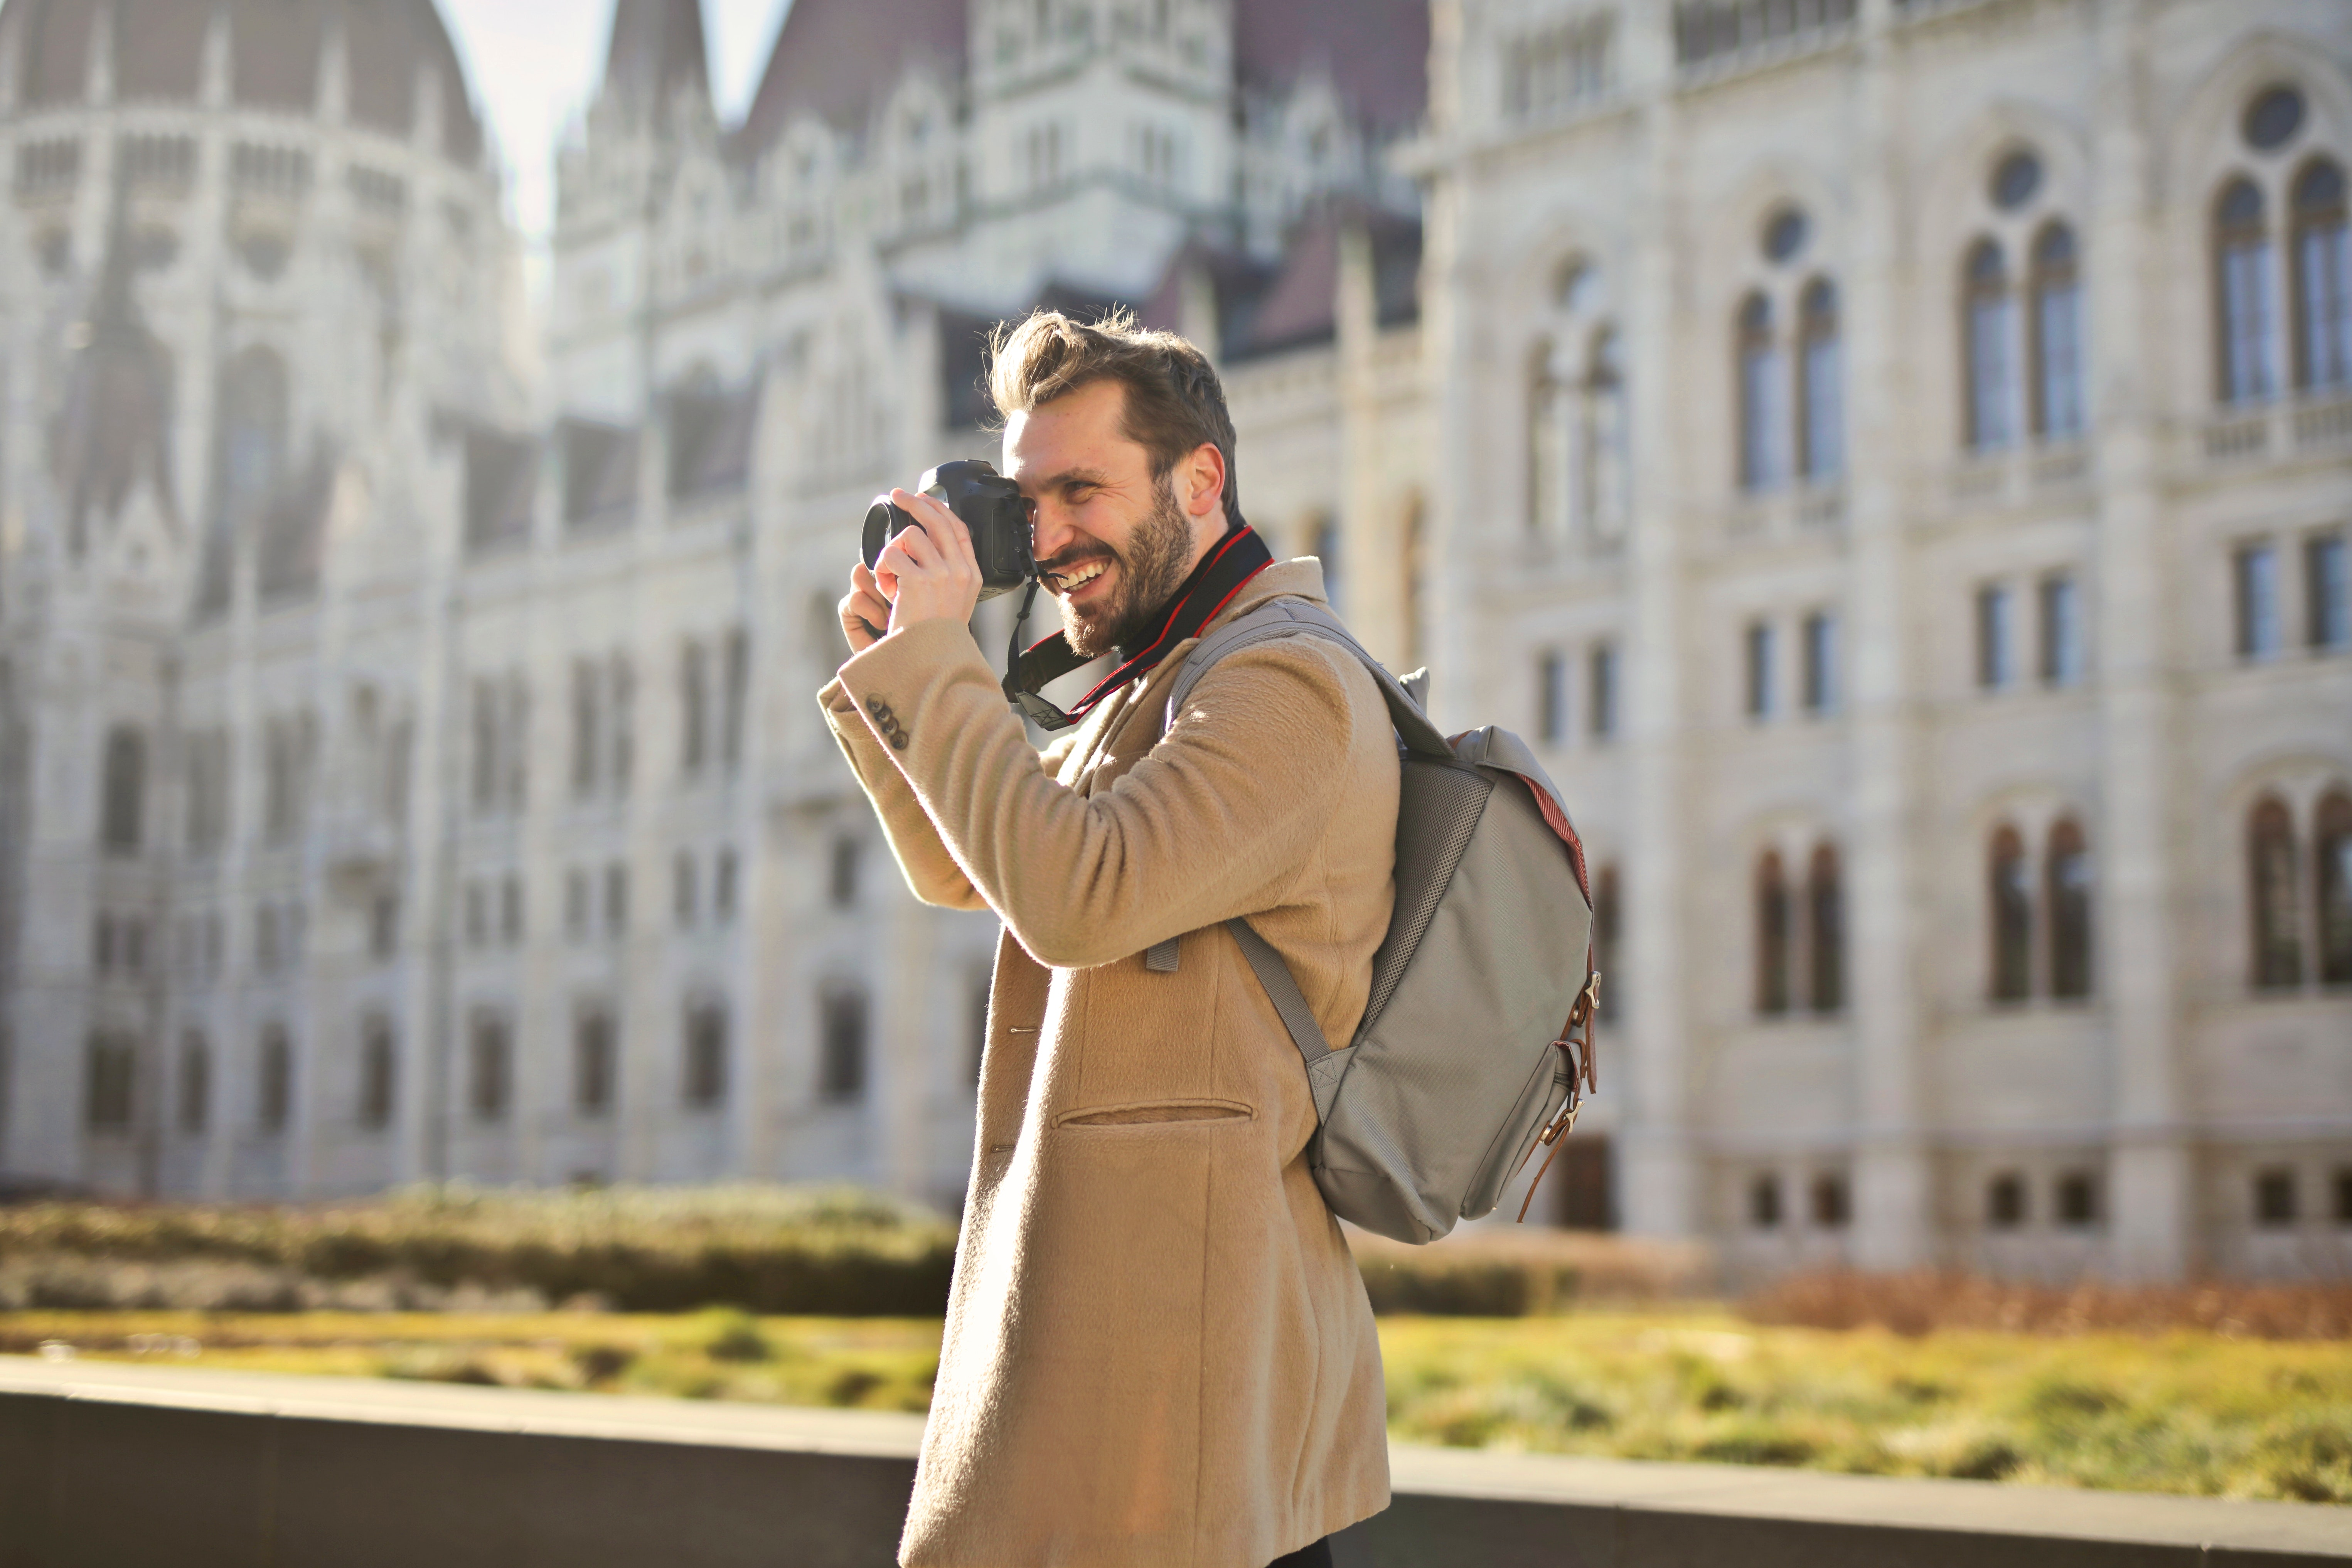 architecture-backpack-beard-842578